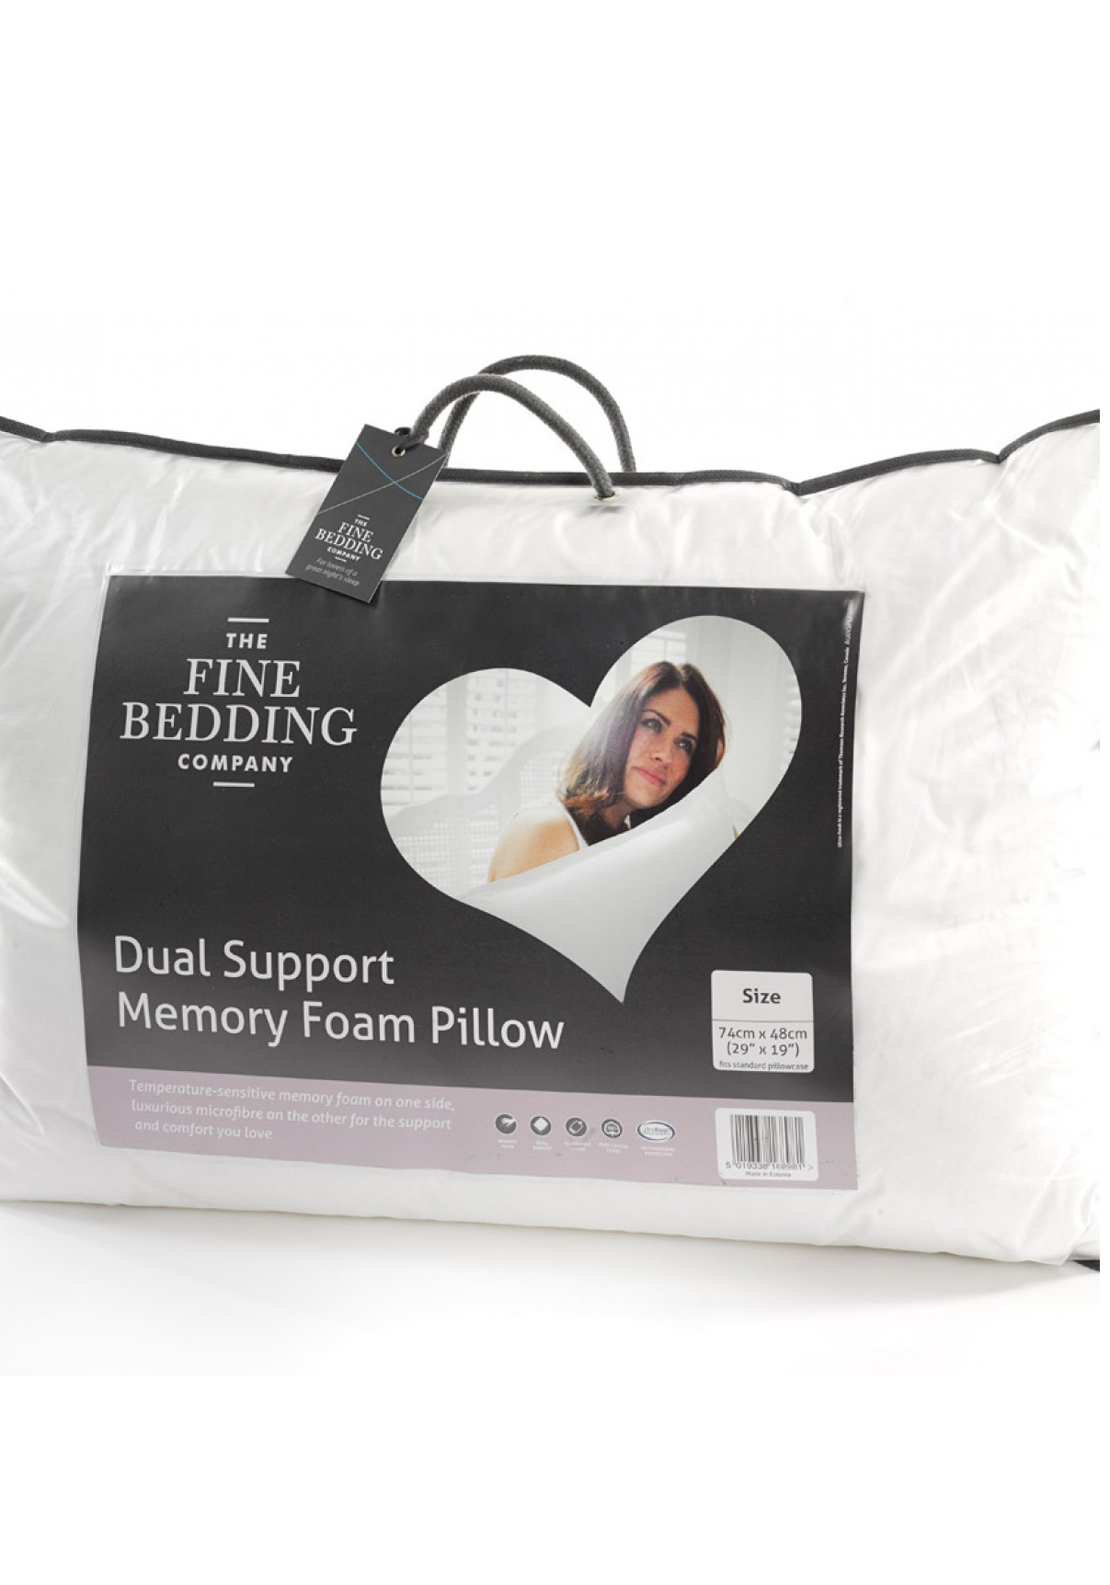 The Fine Bedding Company Dual Support Memory Foam Pillow, 74 x 48cm